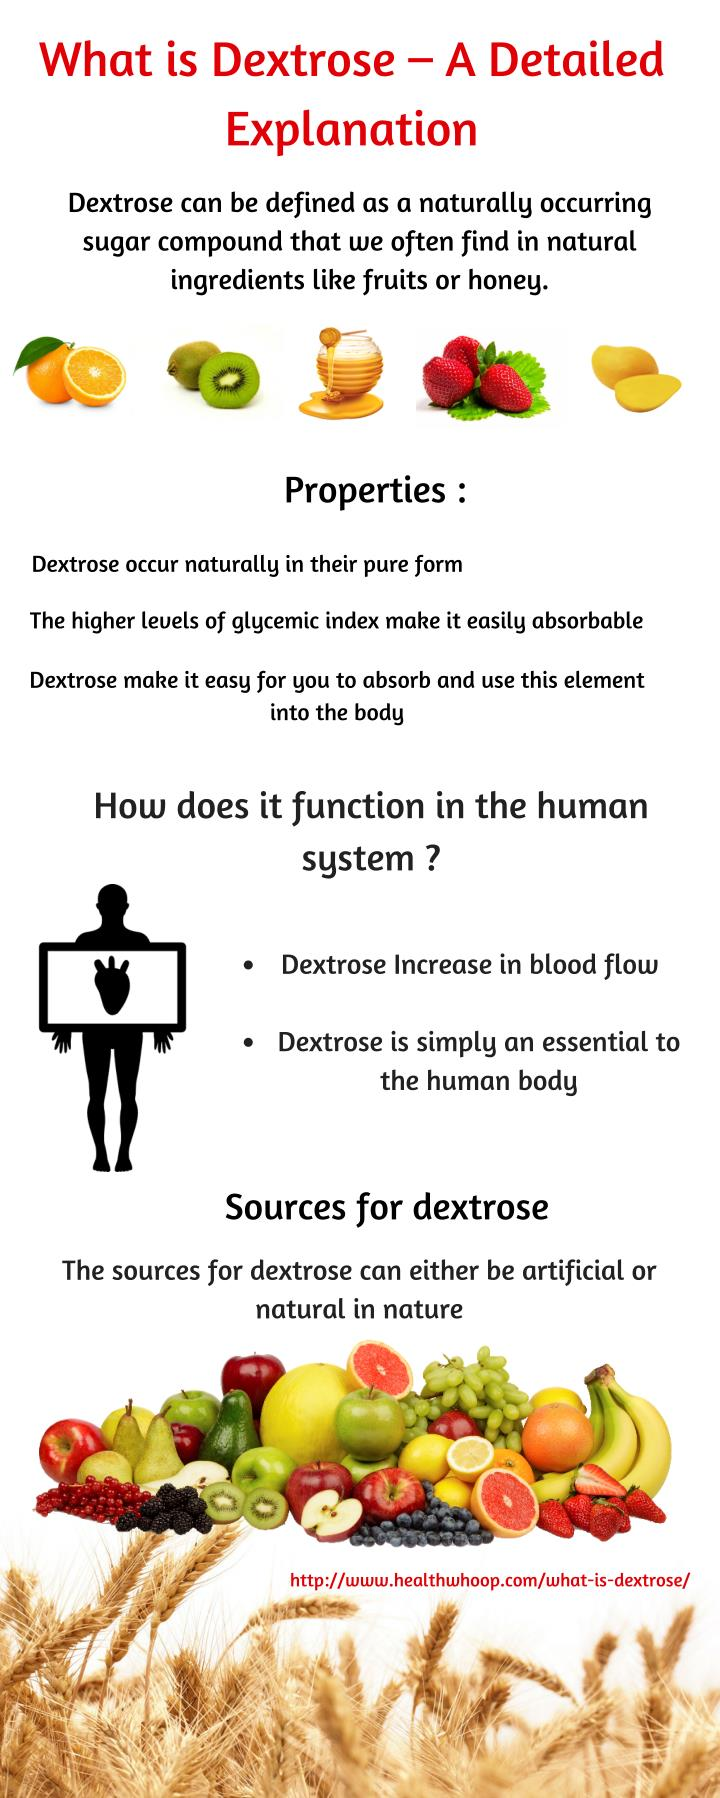 What is Dextrose – A Detailed